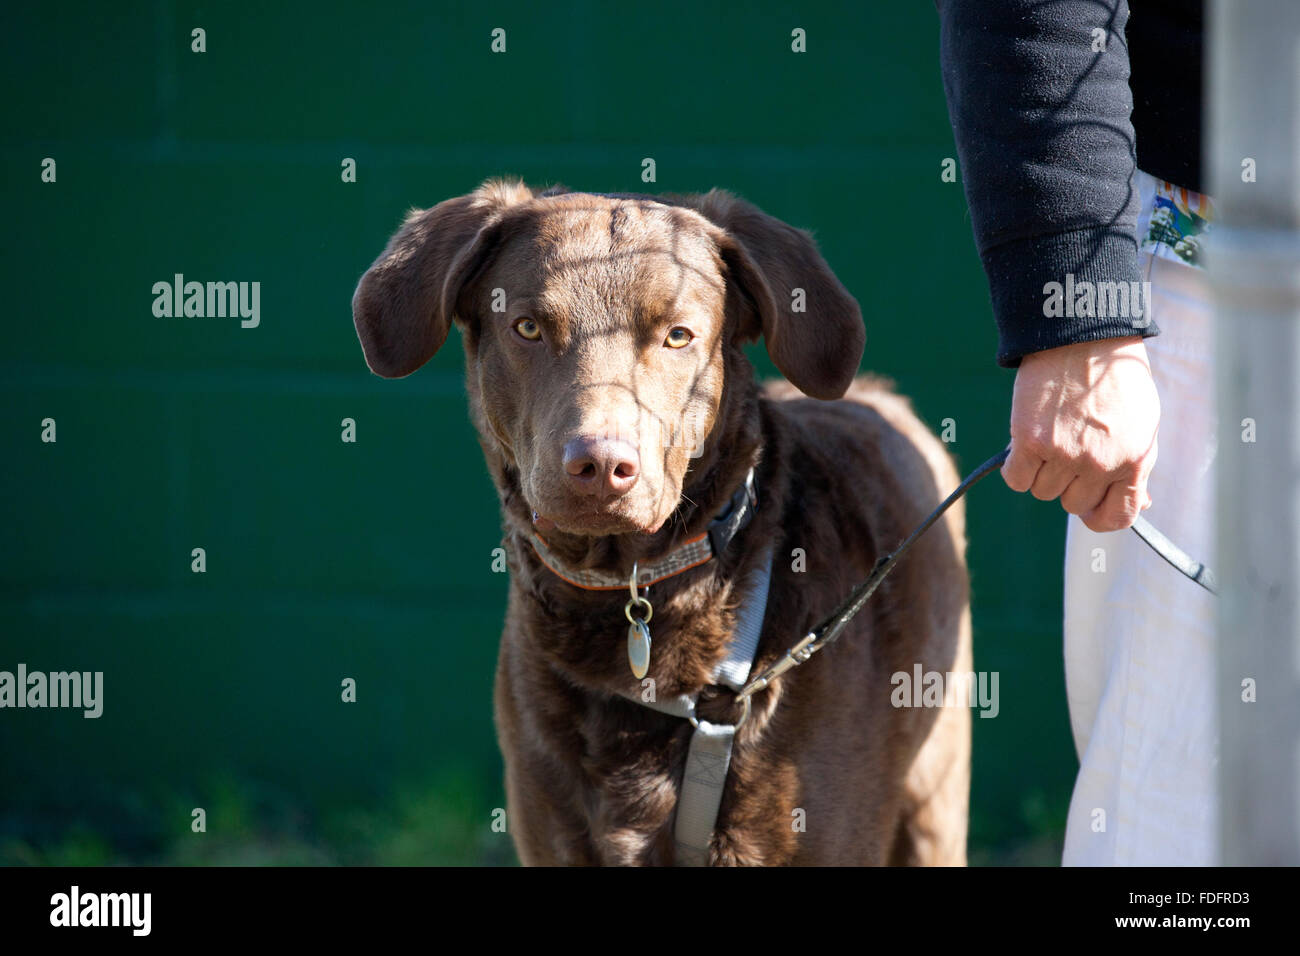 Angry looking large brown dog held on short leash by owner watching. St Paul Minnesota MN USA - Stock Image